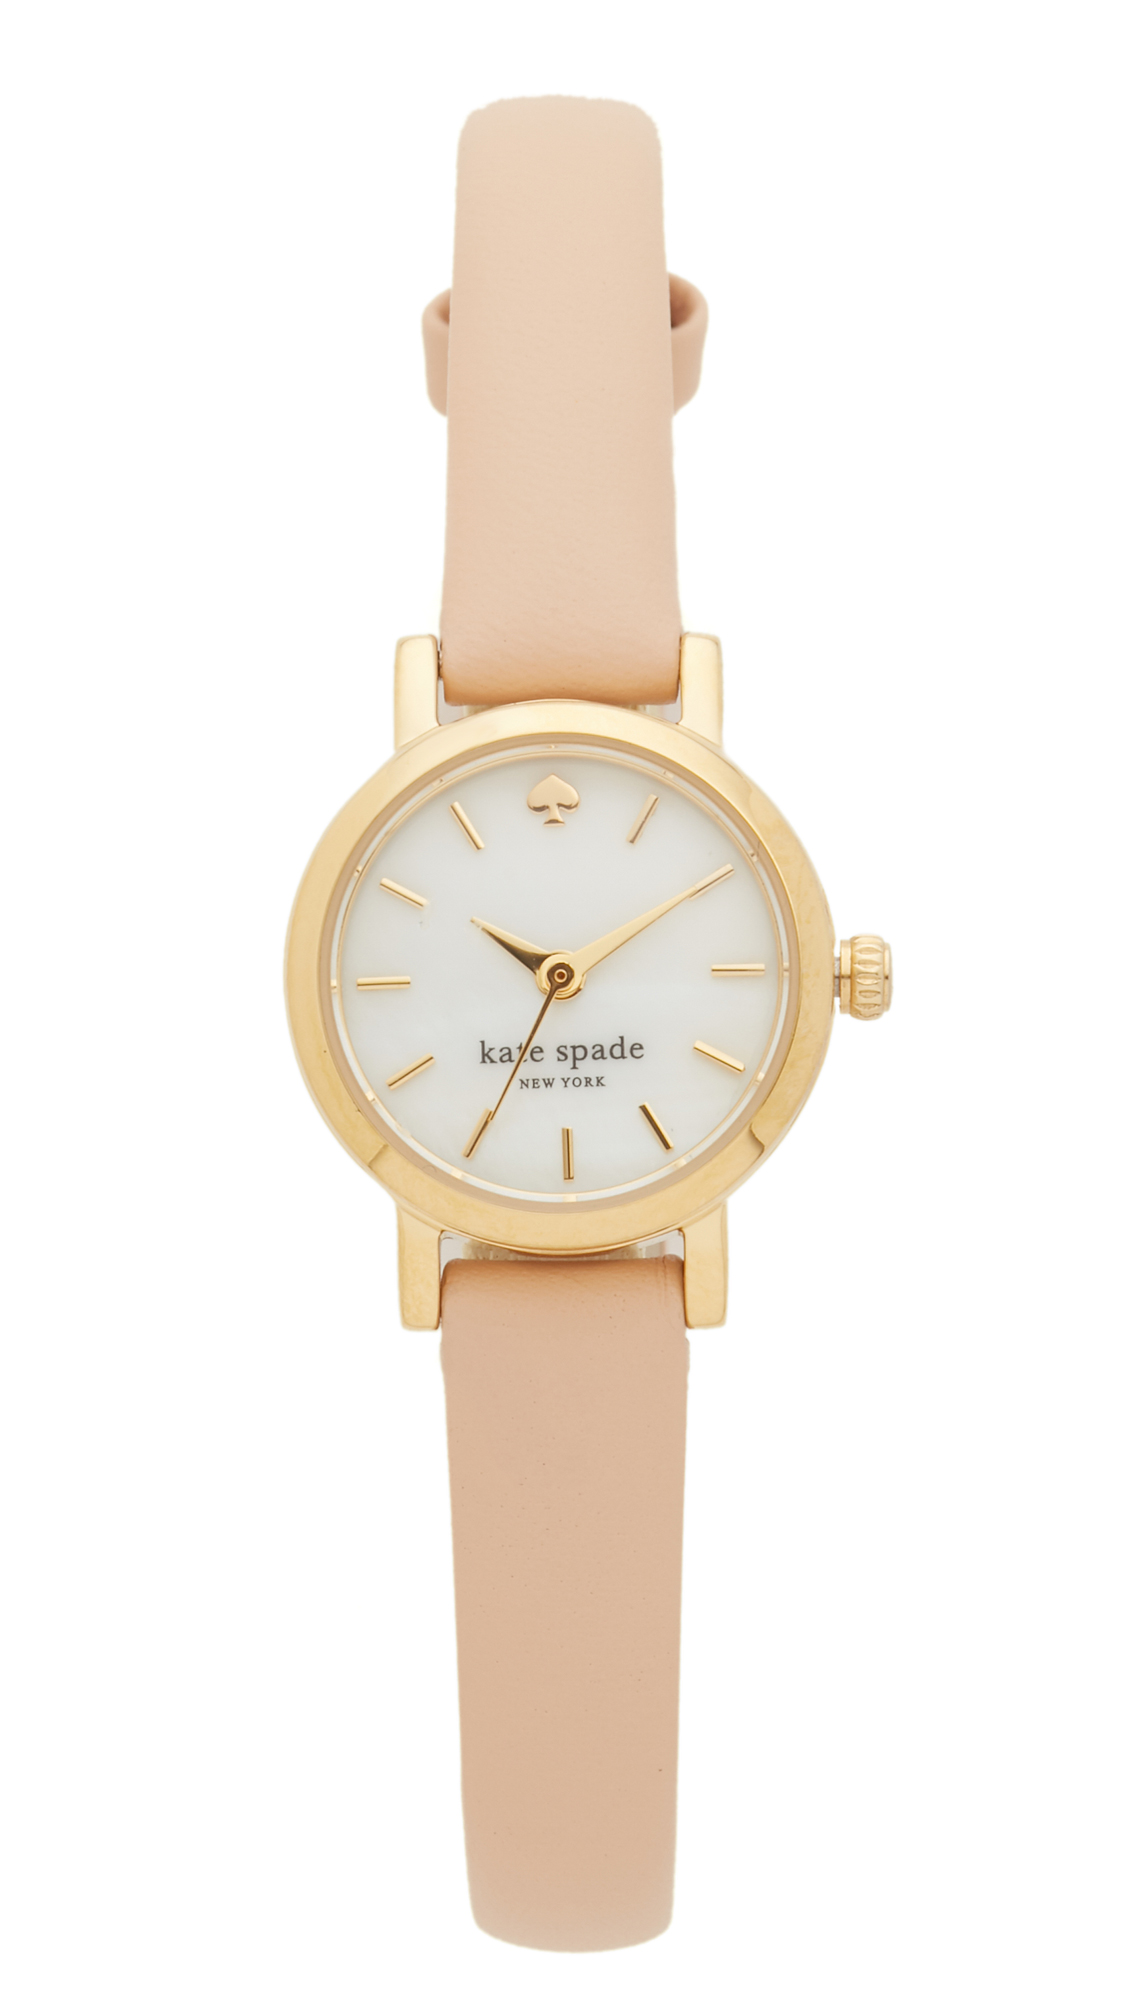 Kate Spade New York Tiny Metro Watch - Vachetta at Shopbop